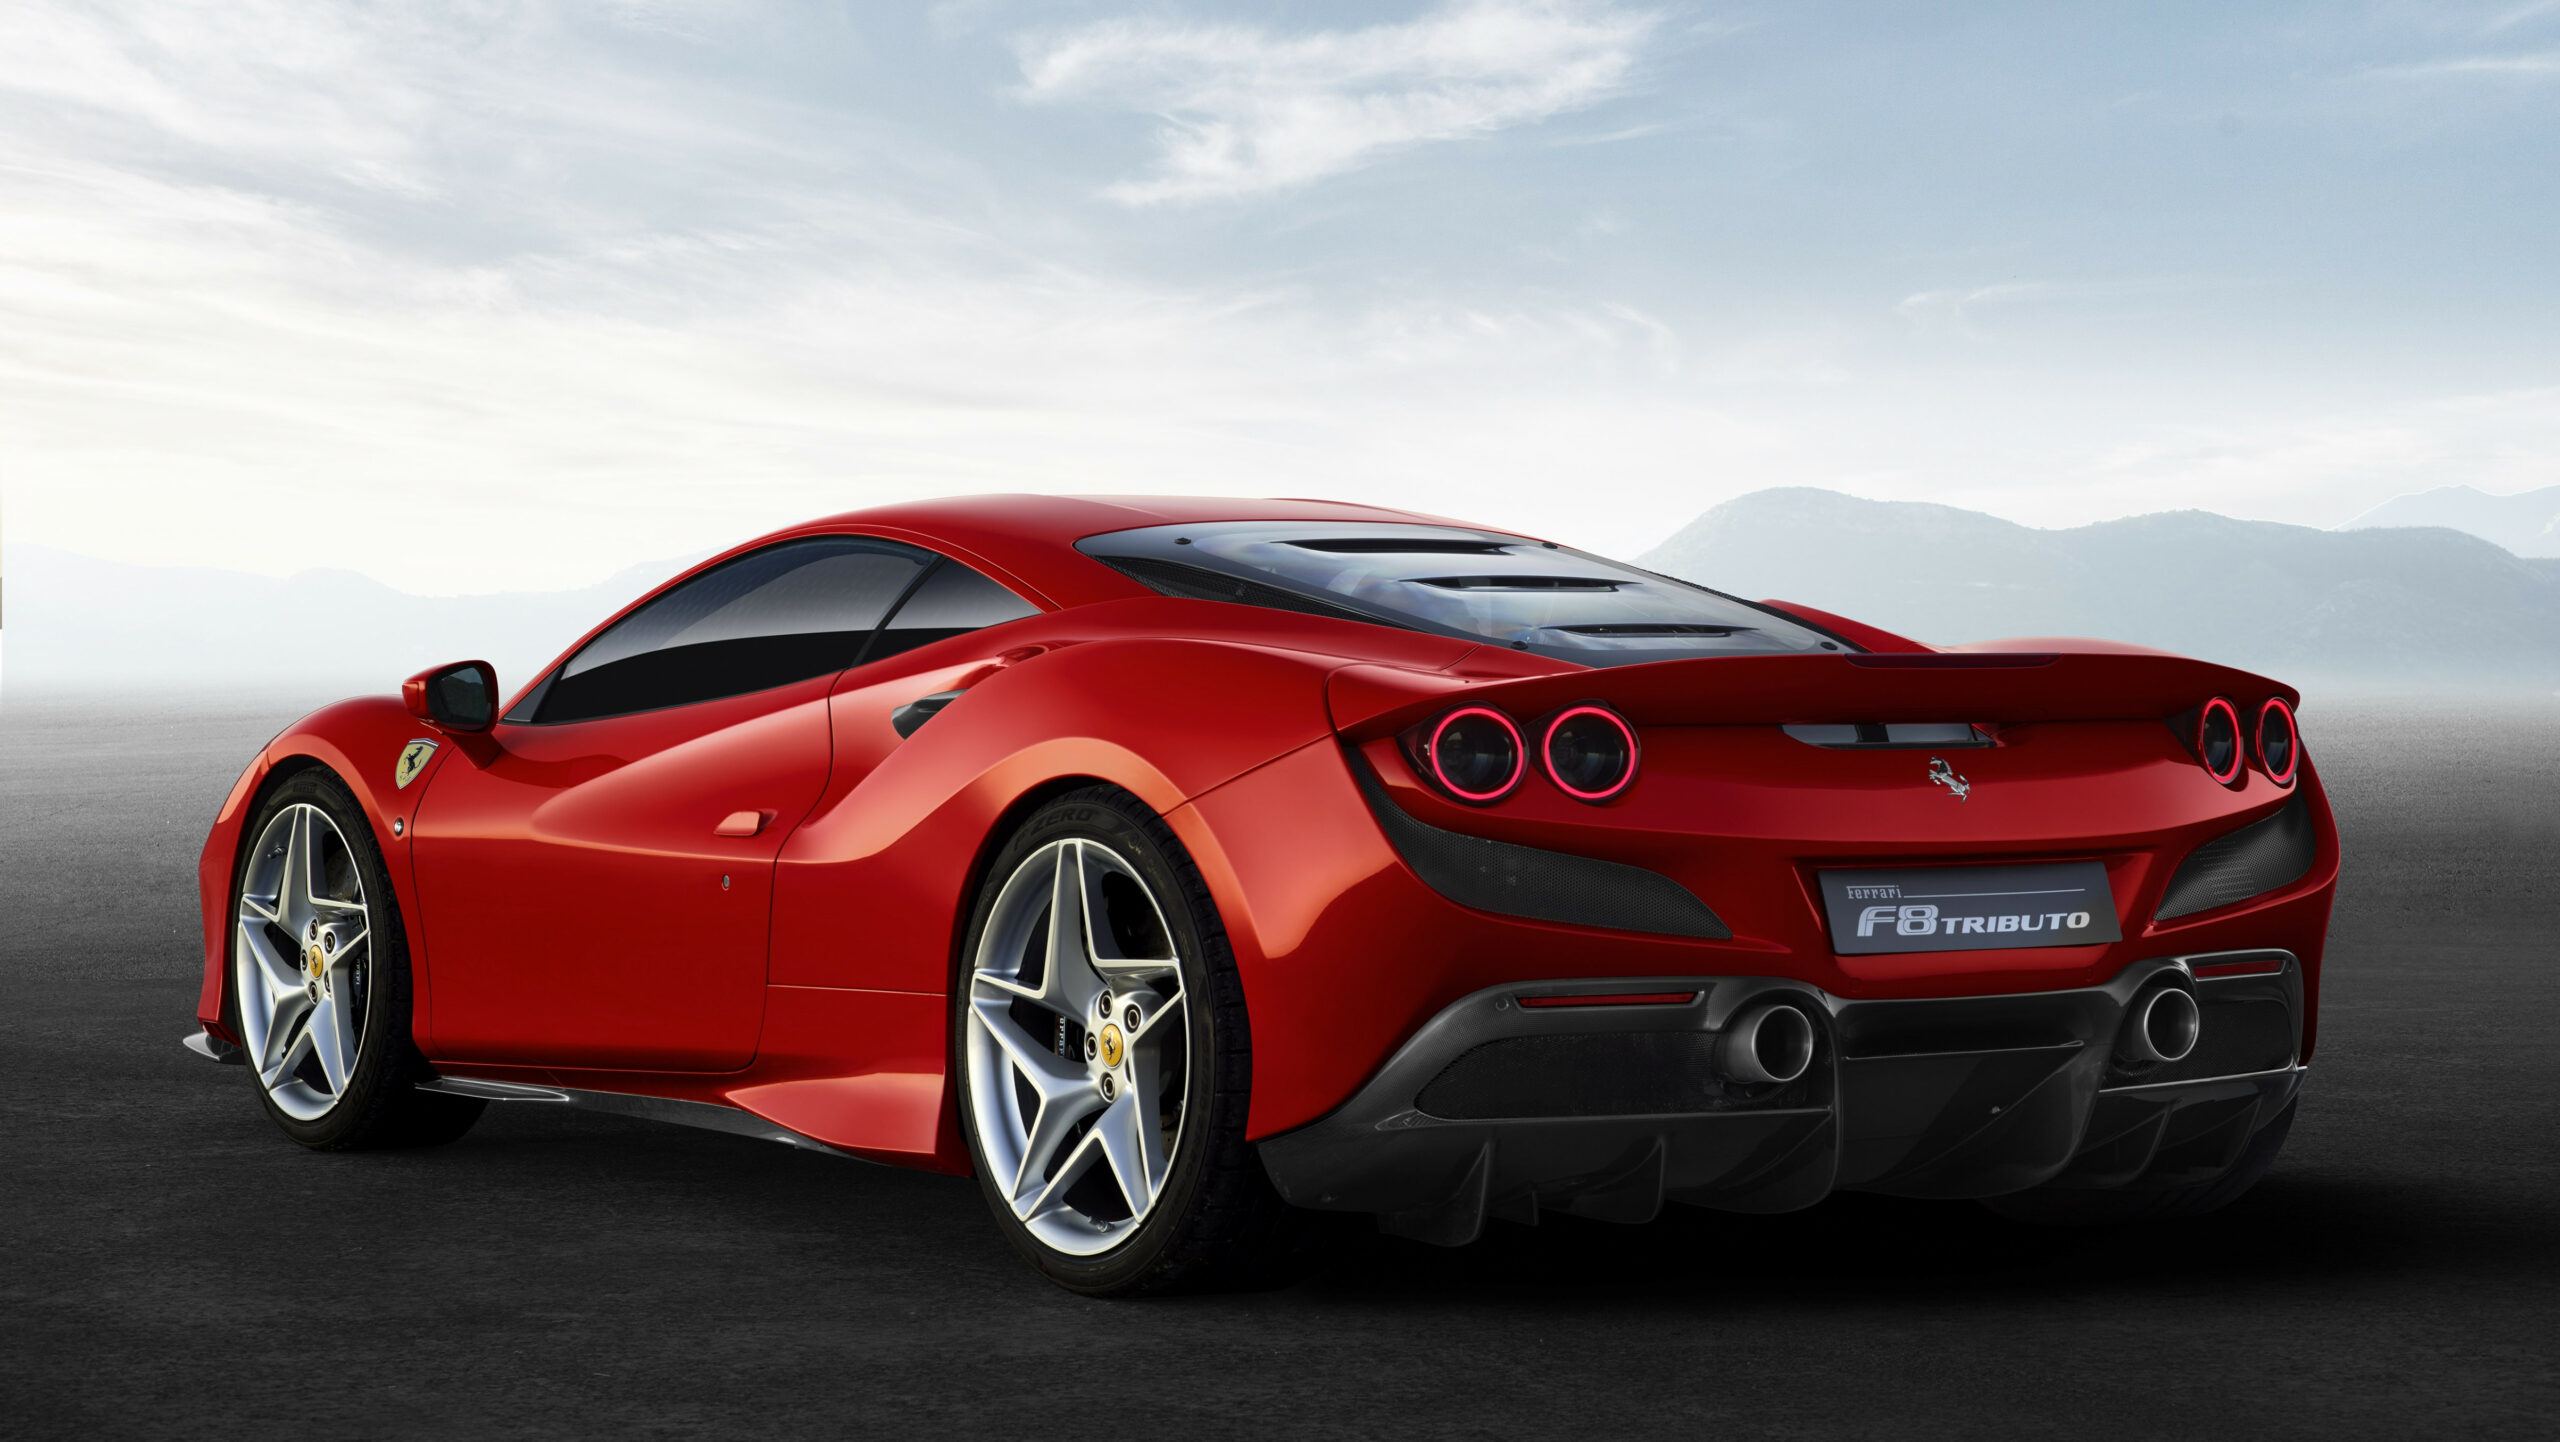 8 Ferrari F8 Tributo Review and Specs - 2020 ferrari horsepower